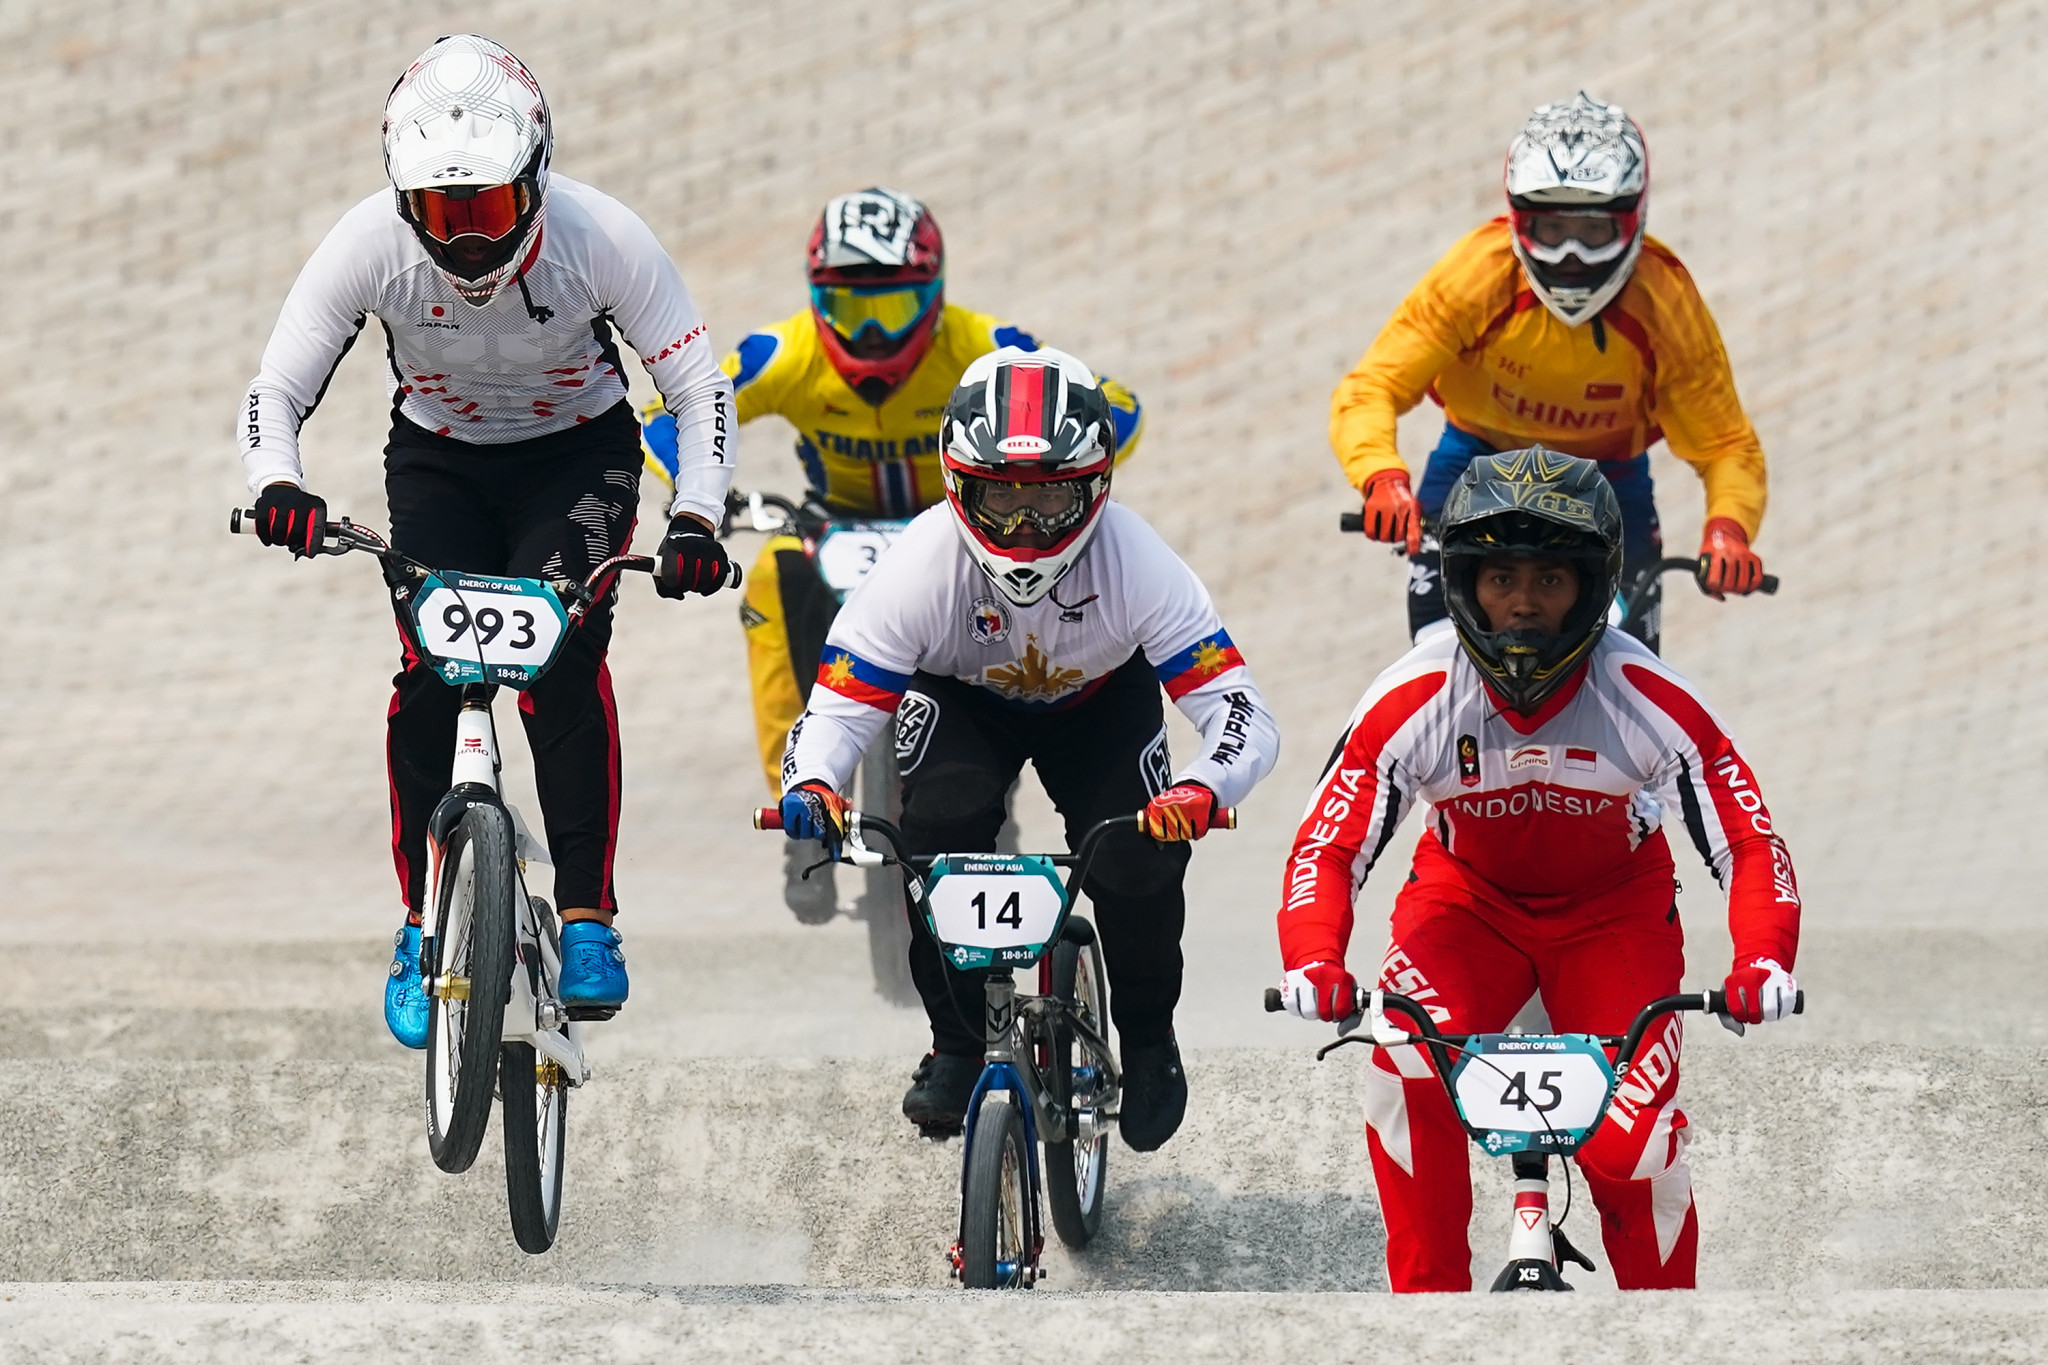 Medals were awarded today in BMX cycling with Japan's Yoshitaku Nagasako, left, taking victory in the men's competition ©Getty Images